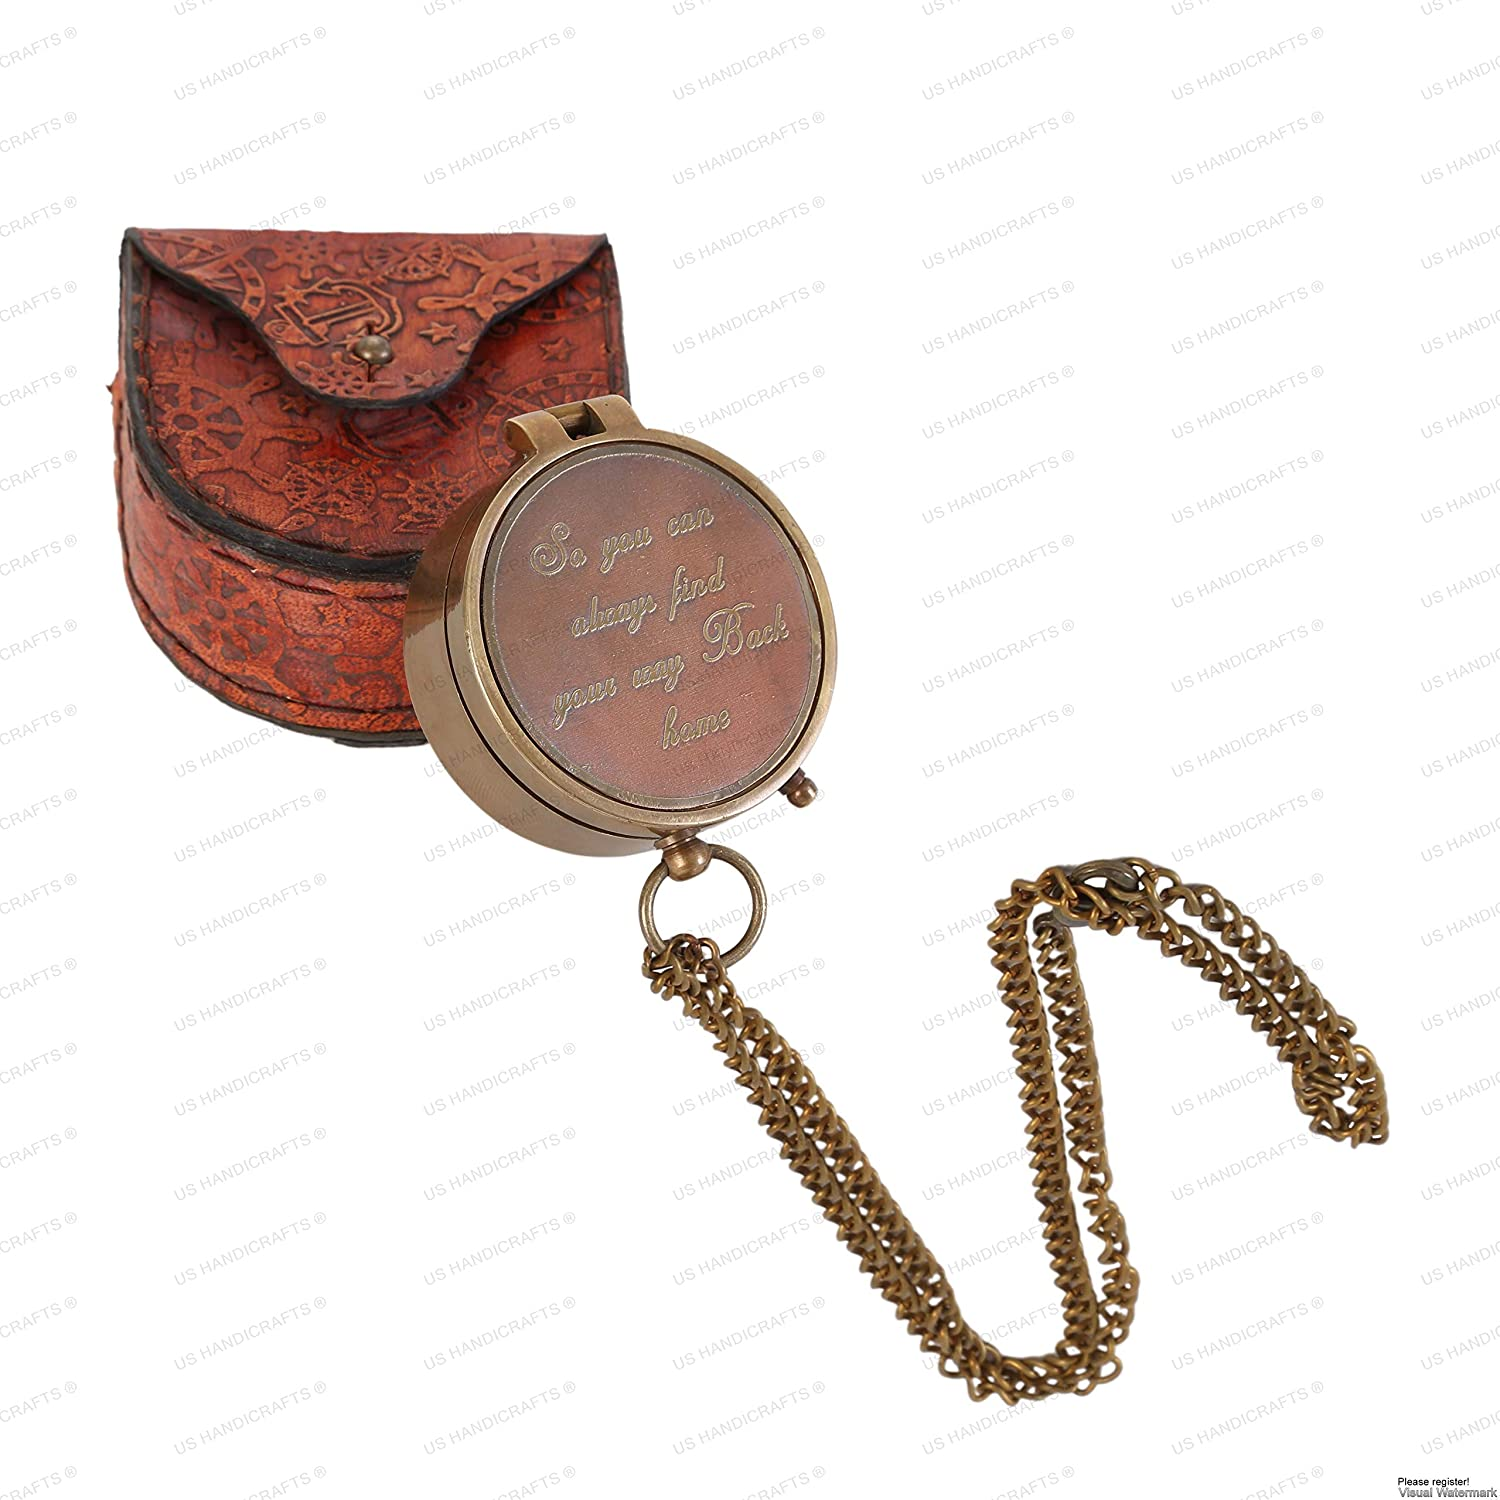 """US HANDICRAFTS """"So You Can Always Find Your Way Back Home"""", Camping Compass Engraved with Handmade Gift for Christmas."""